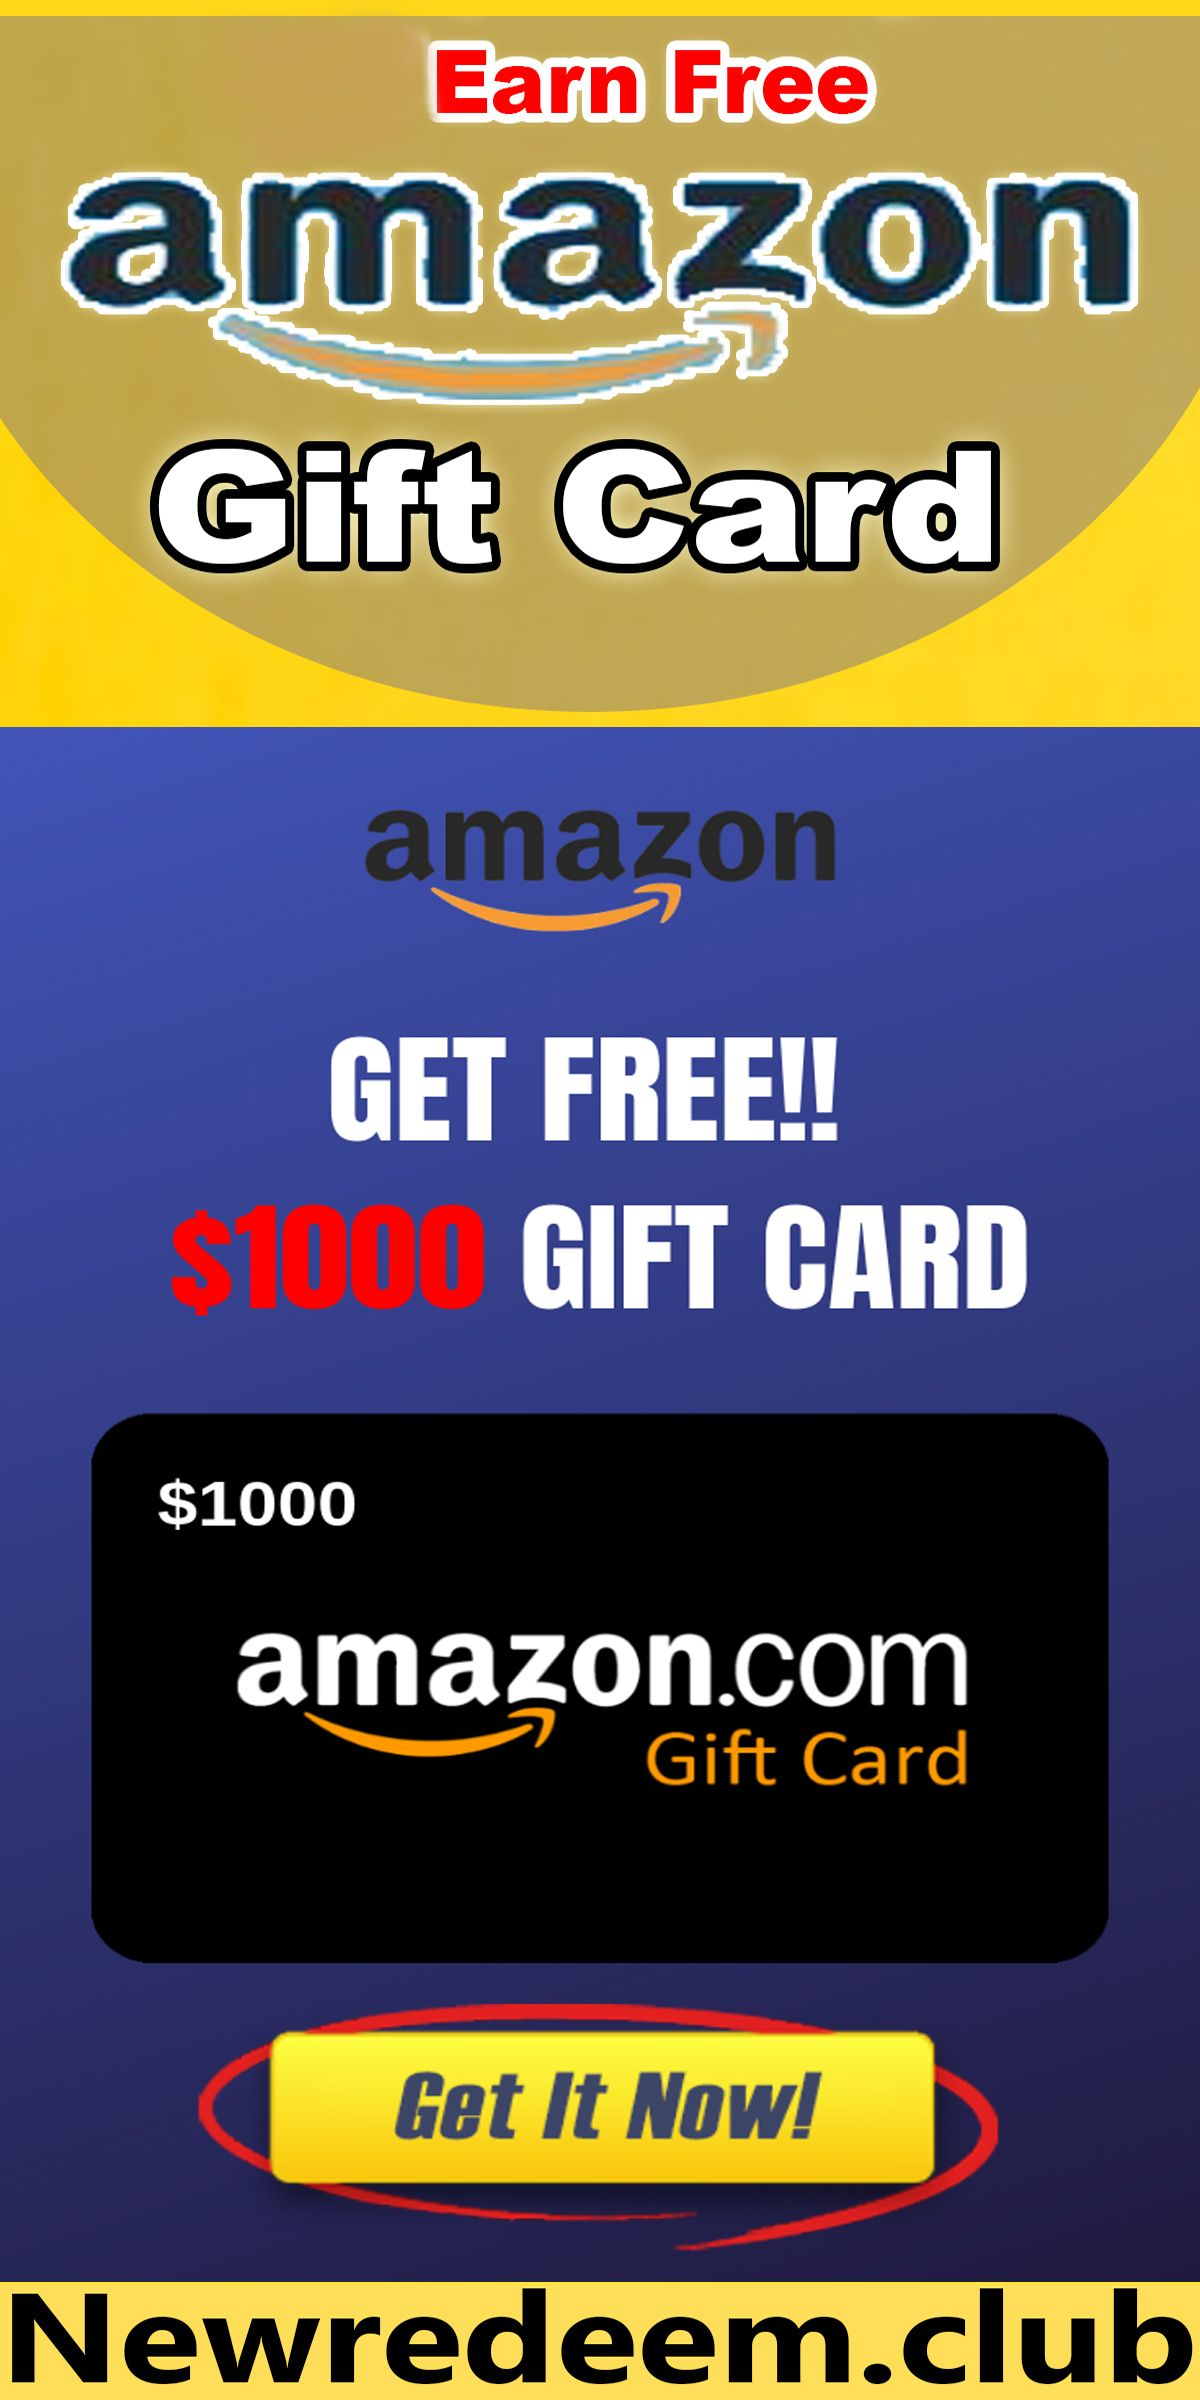 100 Lucky Winners On 2020 Easy Way To Earn Free Amazon Gift Cards Check Out This Easy Way To Get In 2020 Amazon Gift Card Free Free Amazon Products Amazon Gifts